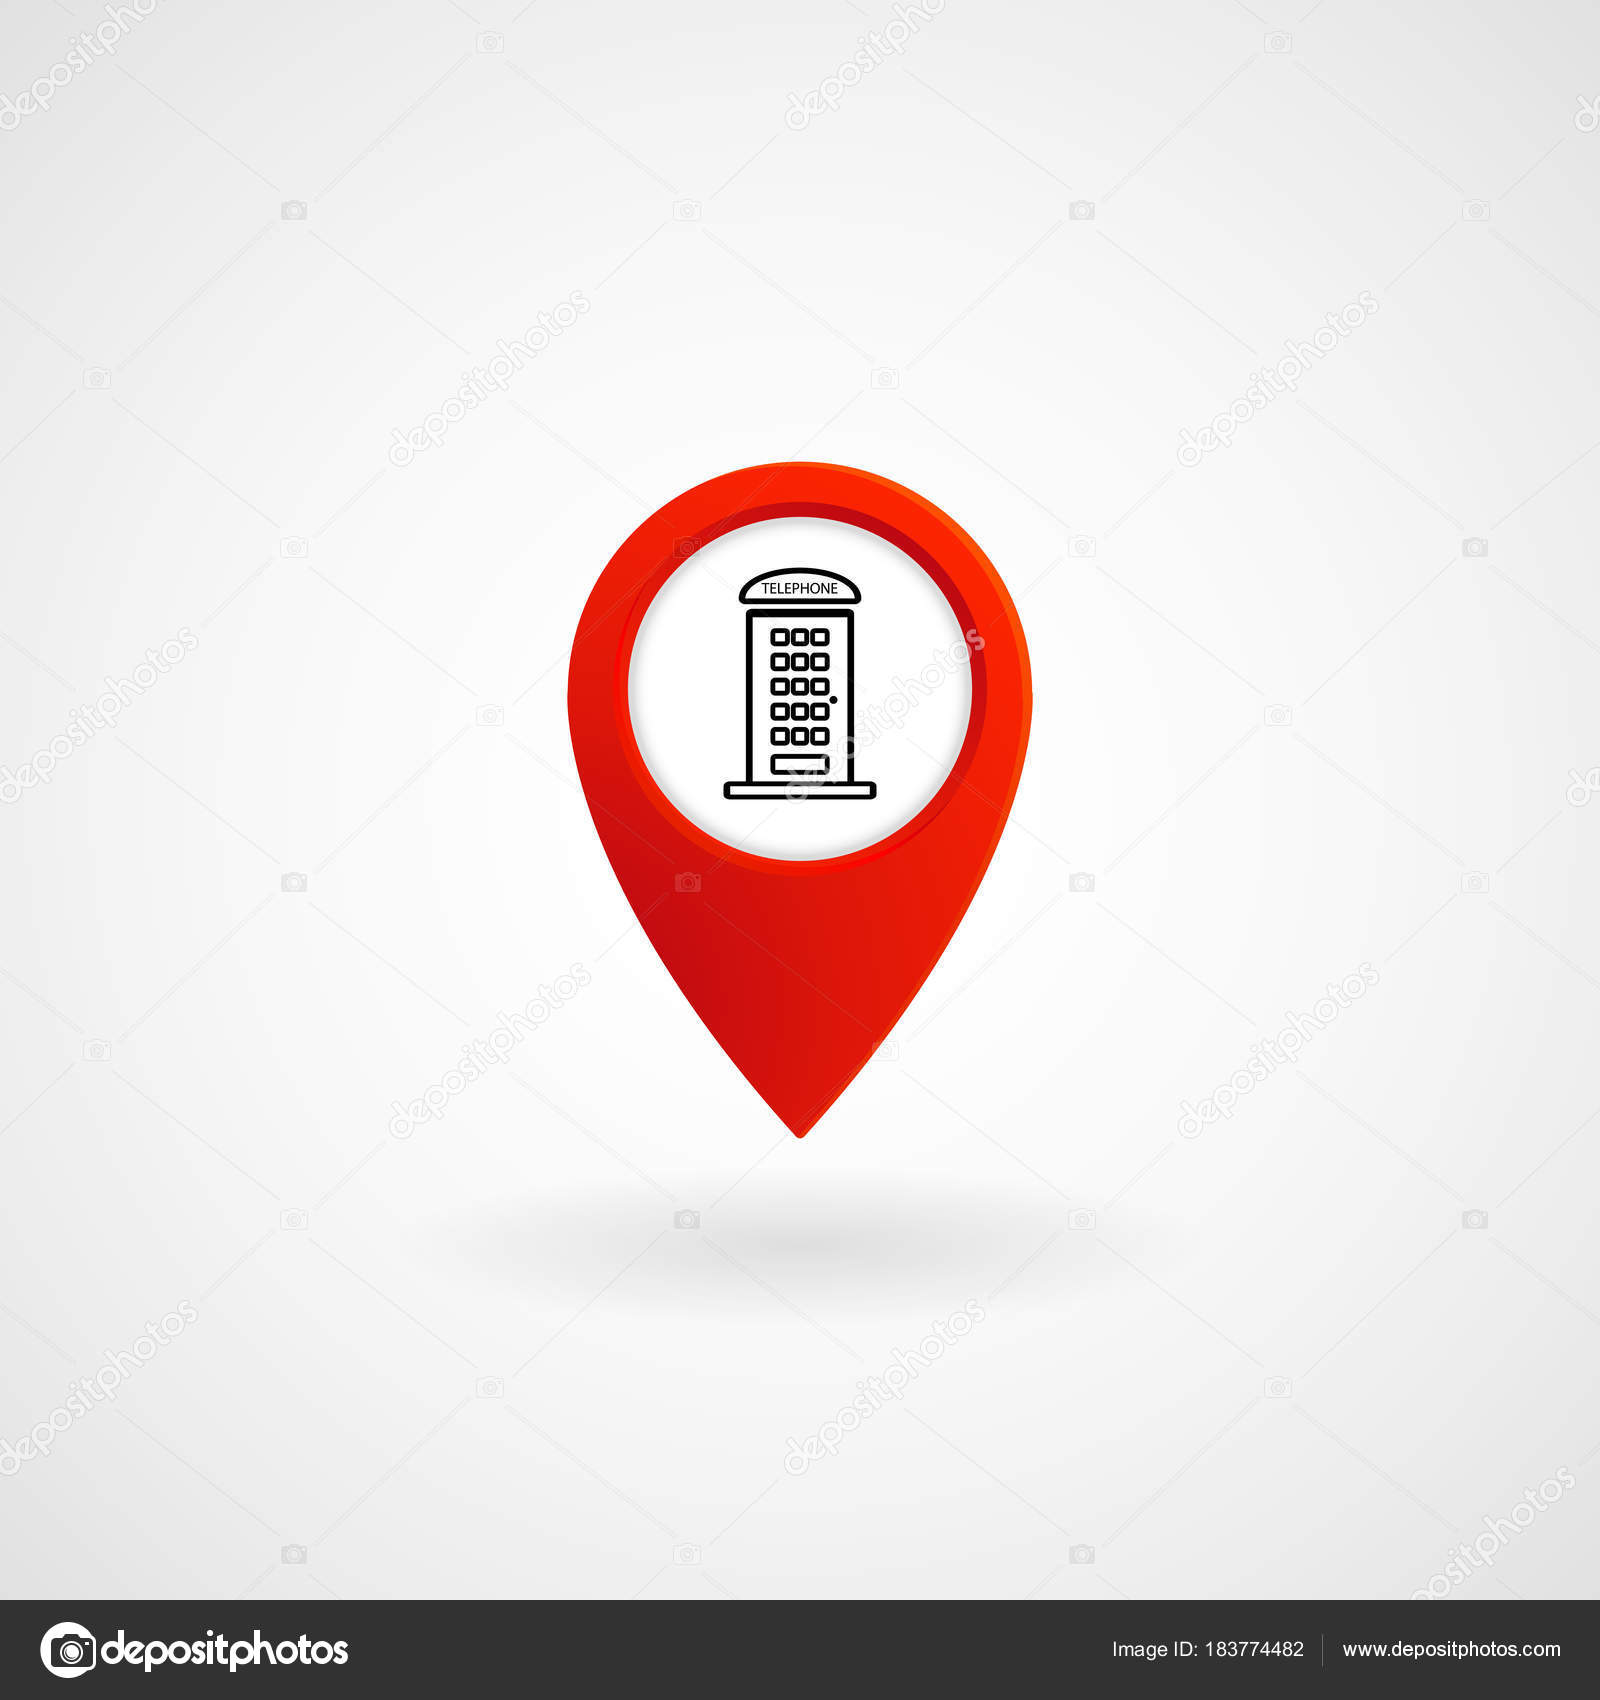 red location icon phone box vector illustration eps file stock